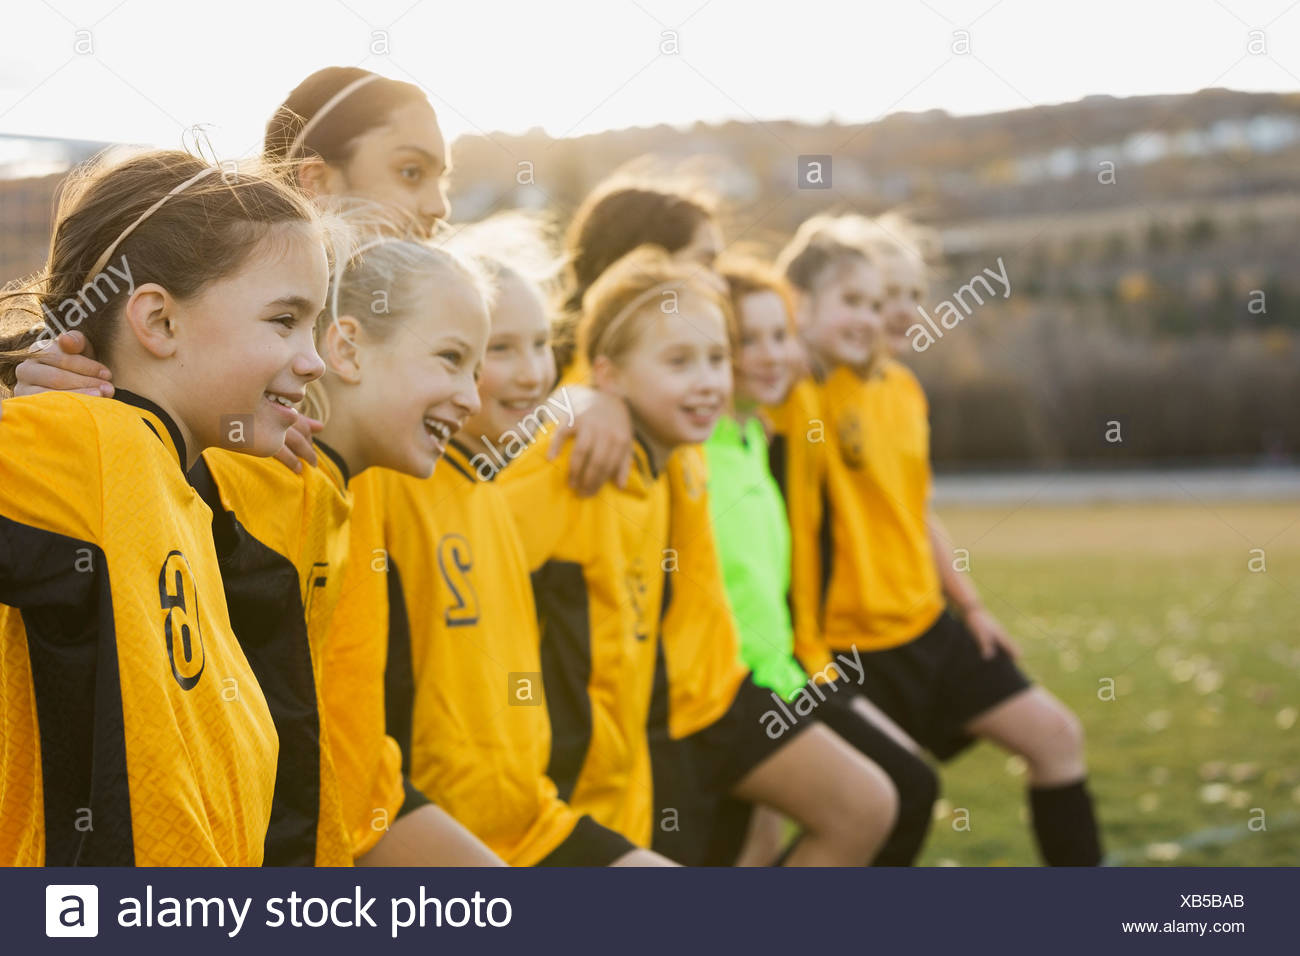 Soccer team lined up on field - Stock Image